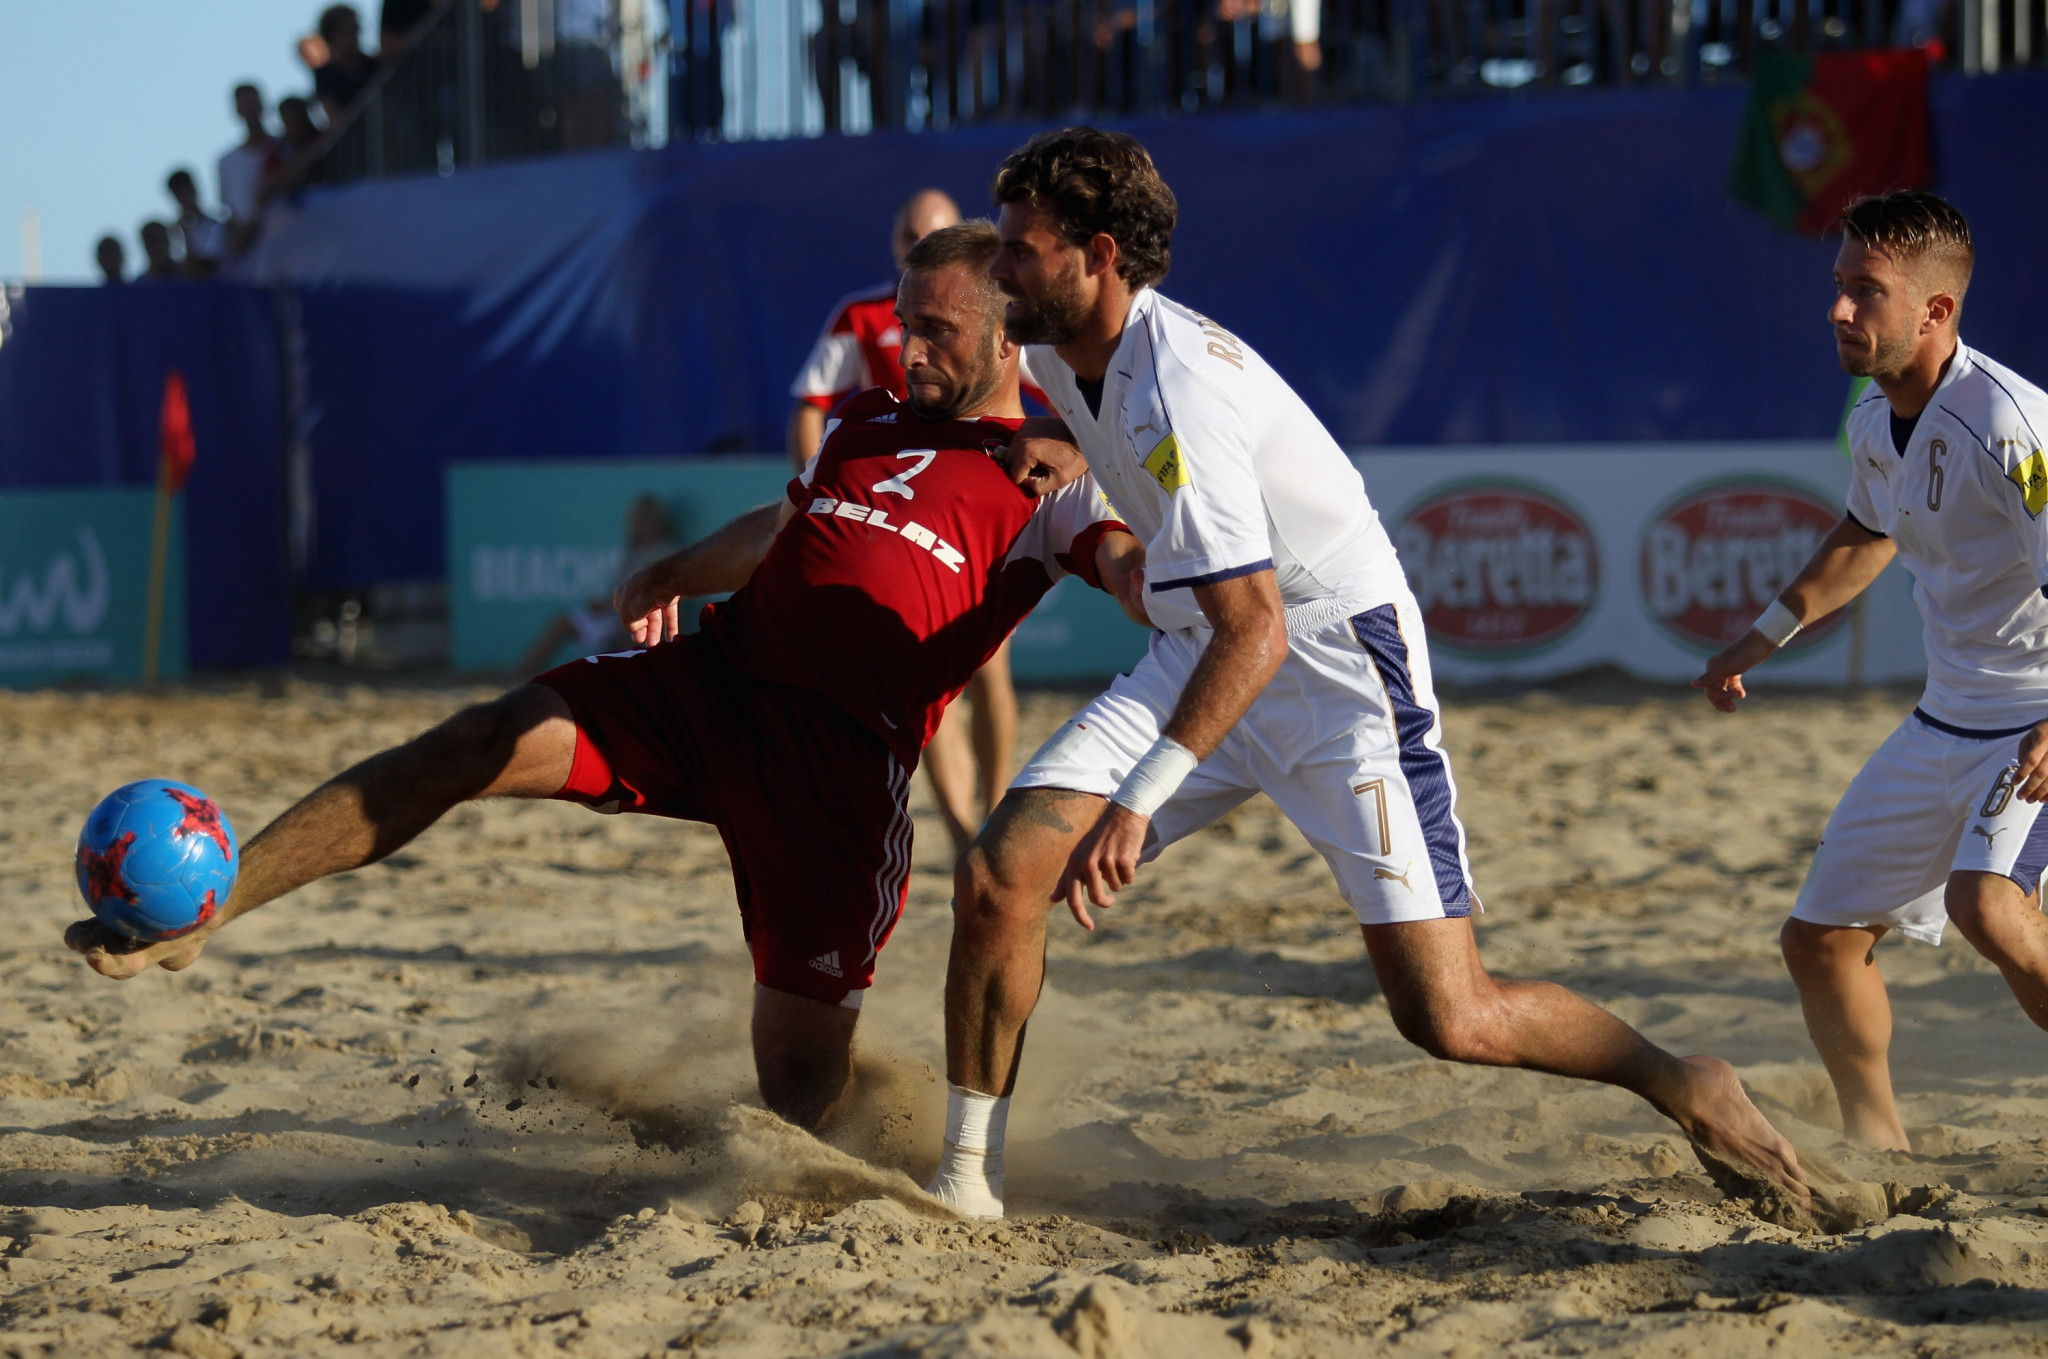 Hosts Belarus and Italy will both compete in the beach soccer competition at Minsk 2019 ©Getty Images